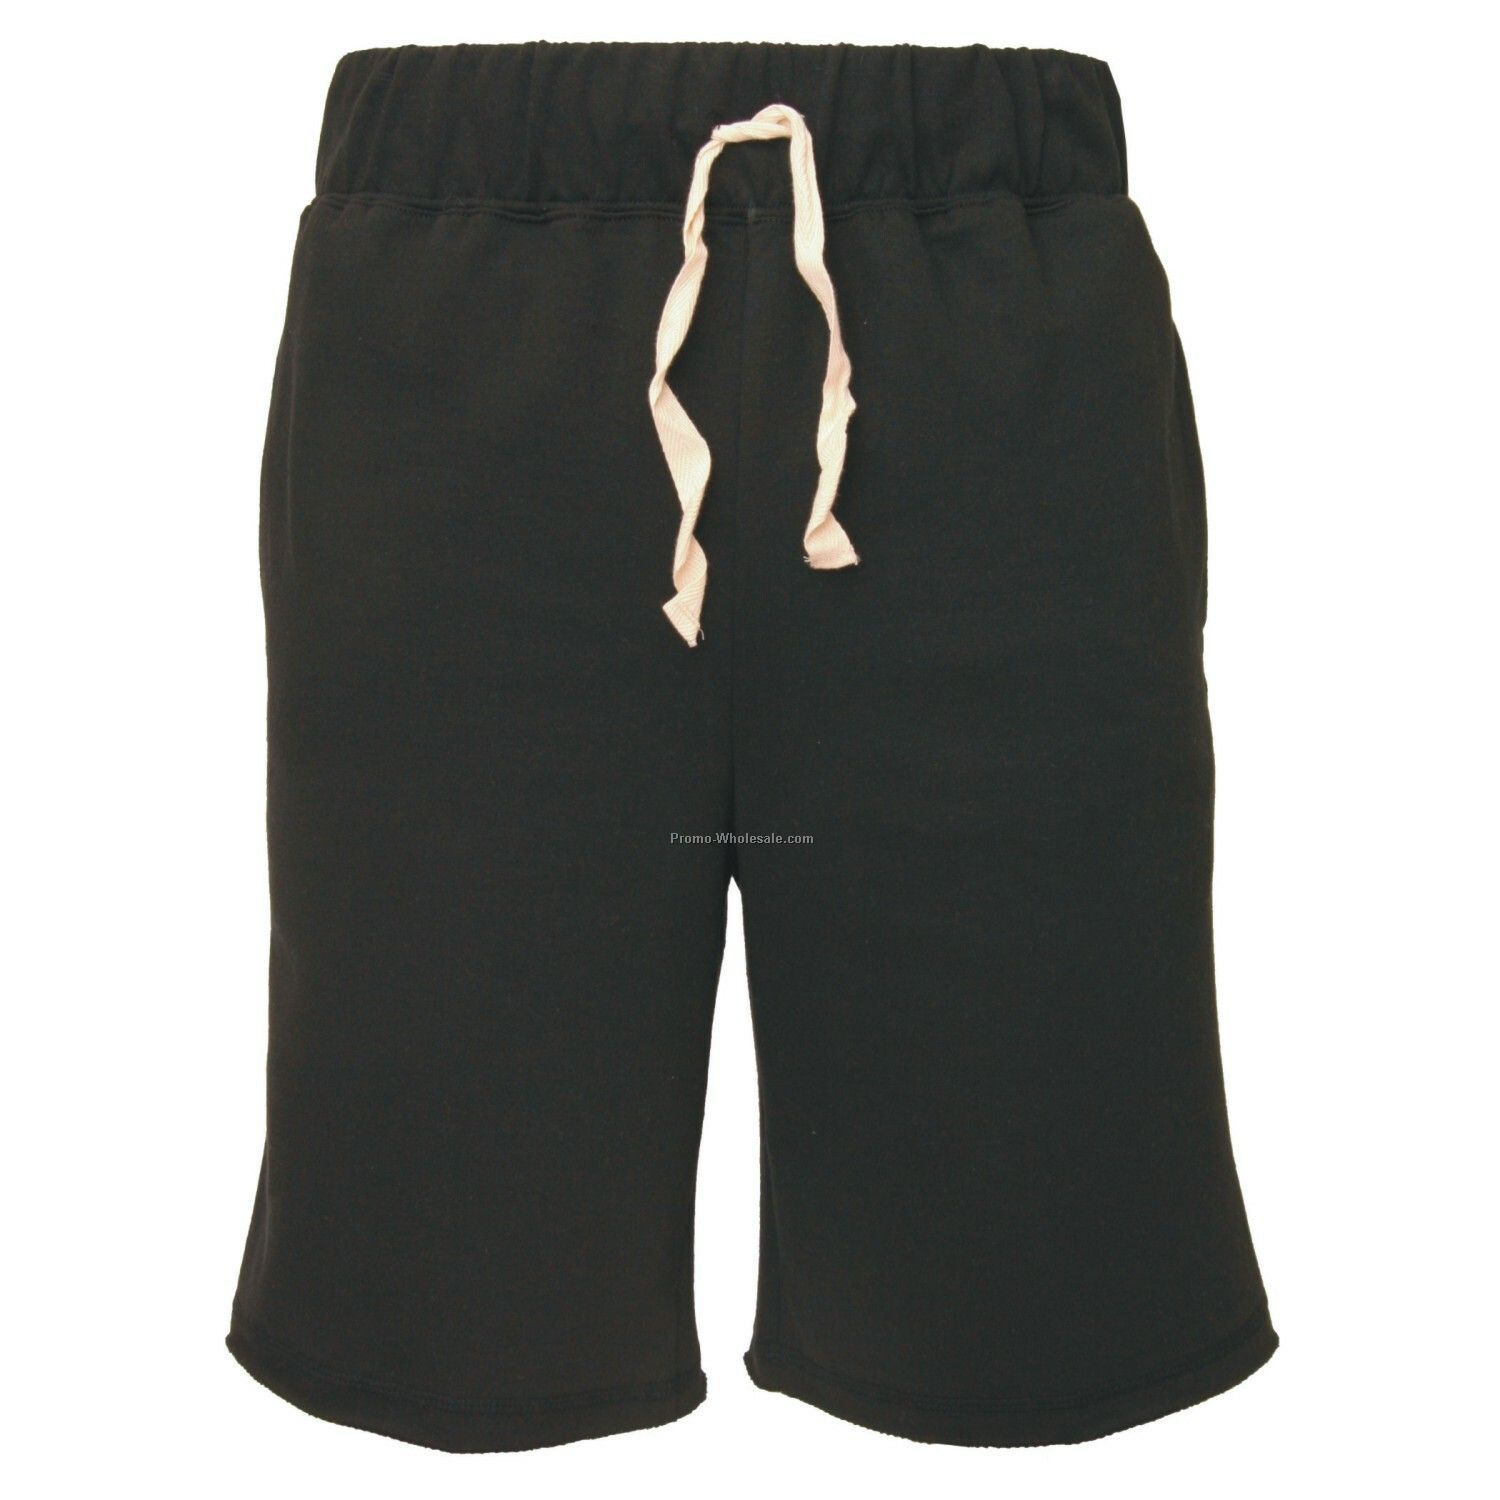 Adults` Black First Place Fleece Shorts With 2 Side Pockets (S-xl)